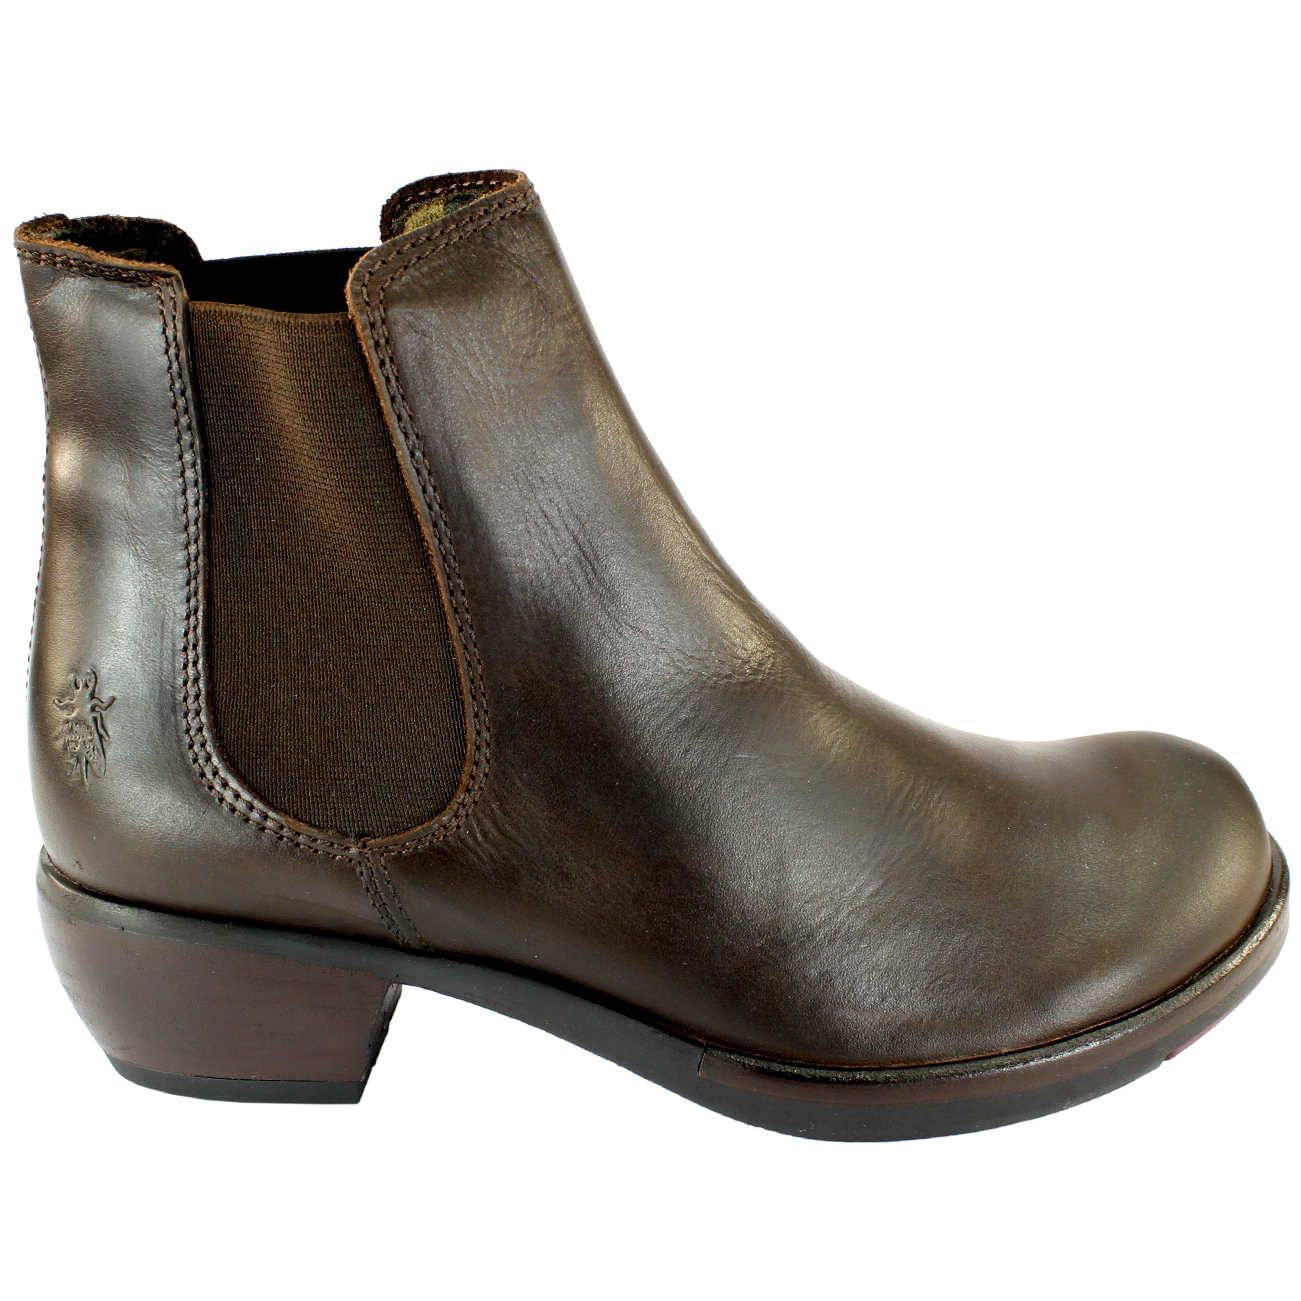 brand new 4d51e 3a126 Details about WOMENS FLY LONDON MAKE LOW HEEL ELASTICATED PULL ON CHELSEA  BOOTS LADIES UK 3-8